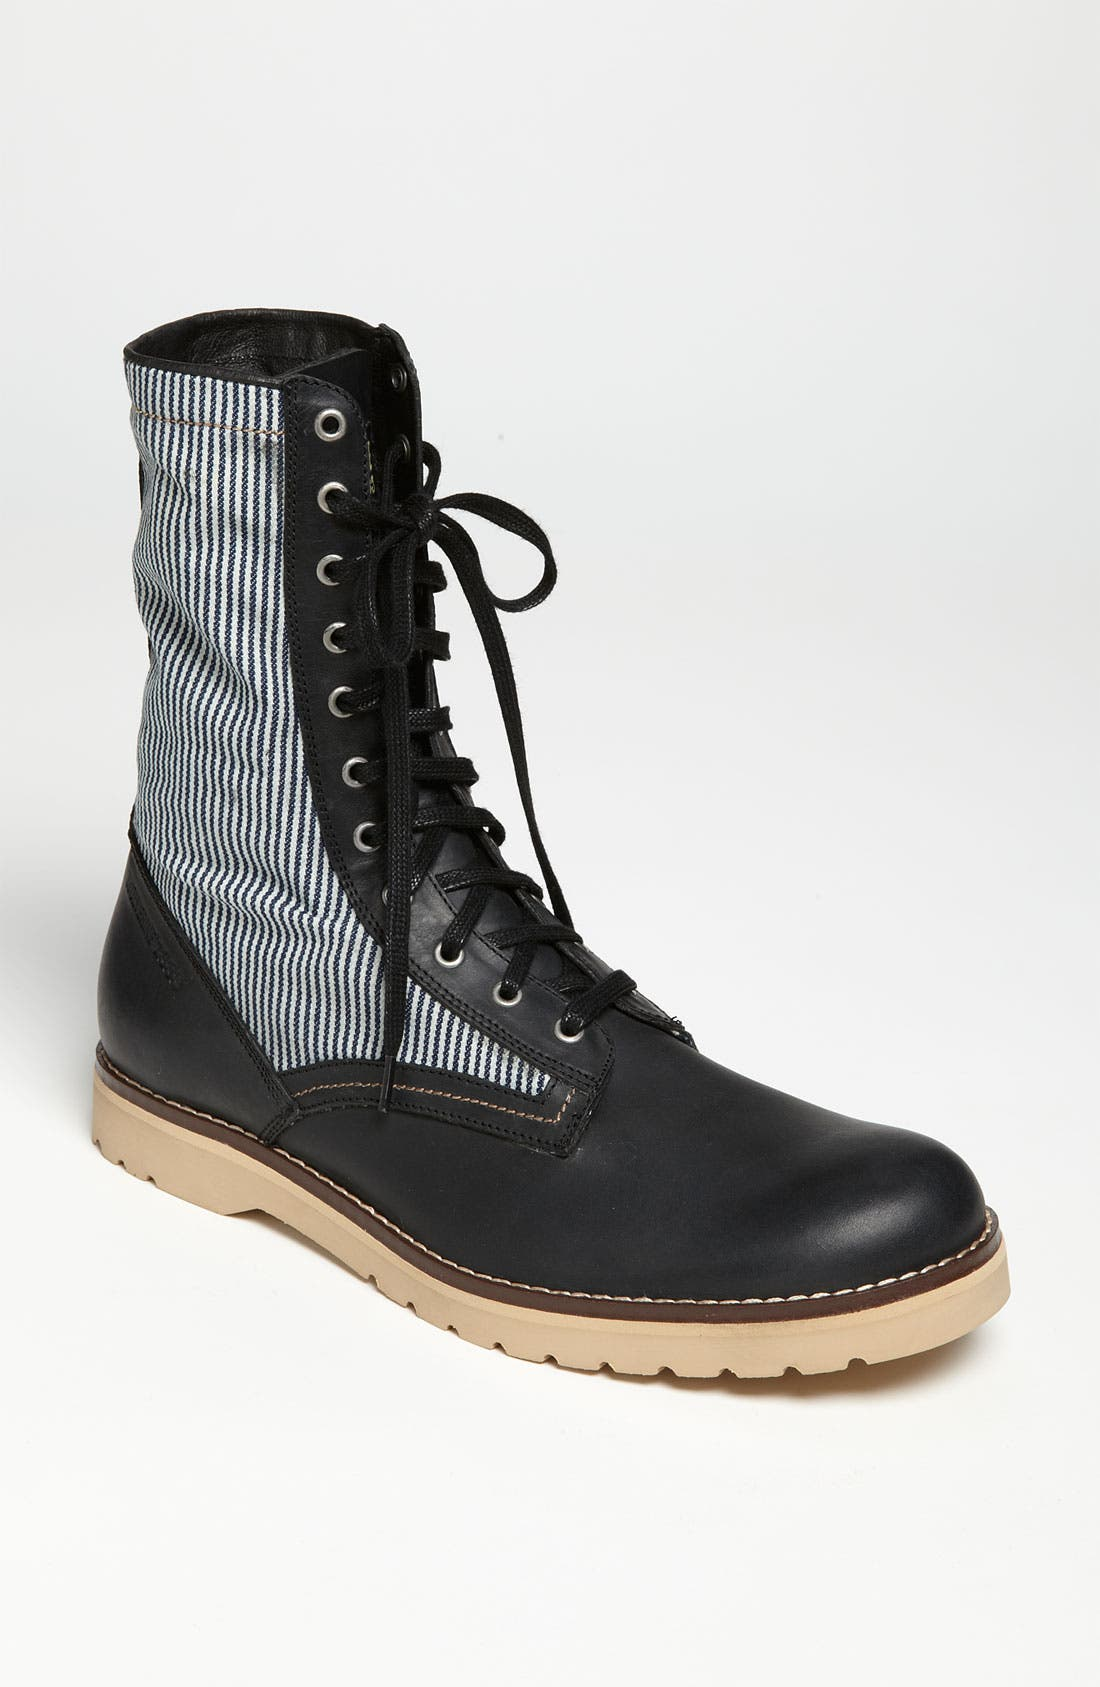 Alternate Image 1 Selected - Wolverine 'Seger' Boot